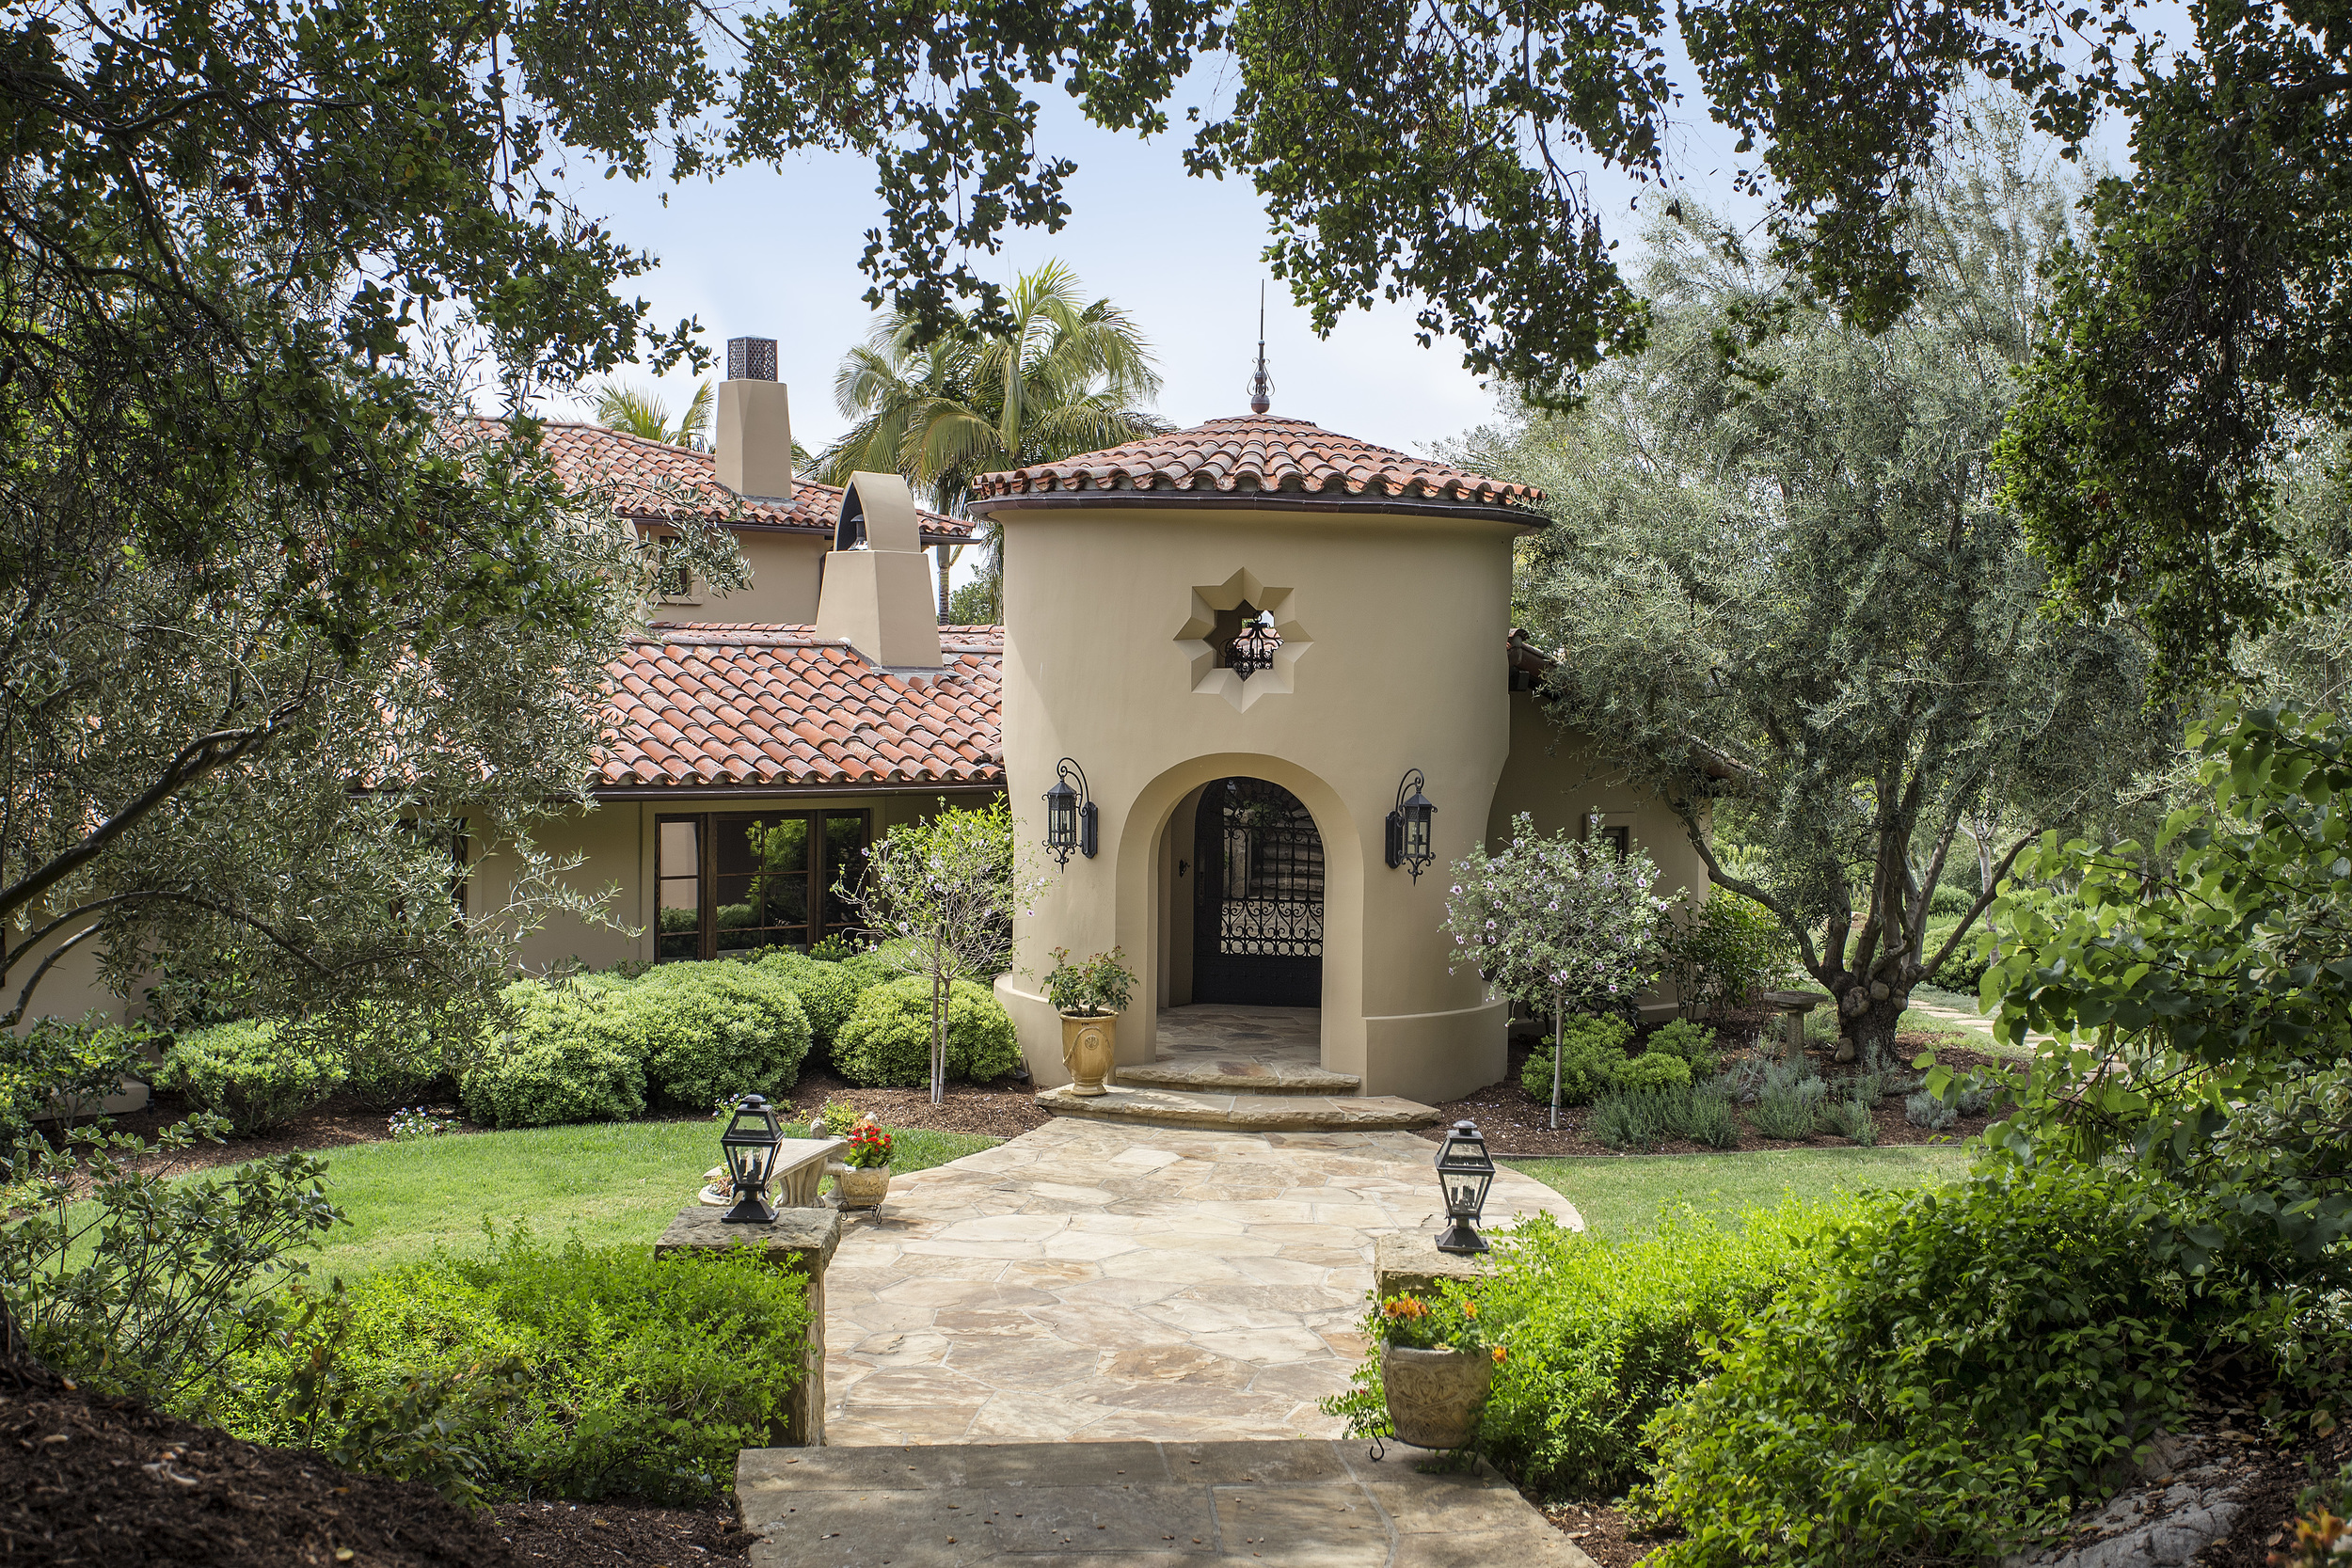 Spanish Revival Home - $5,195,000